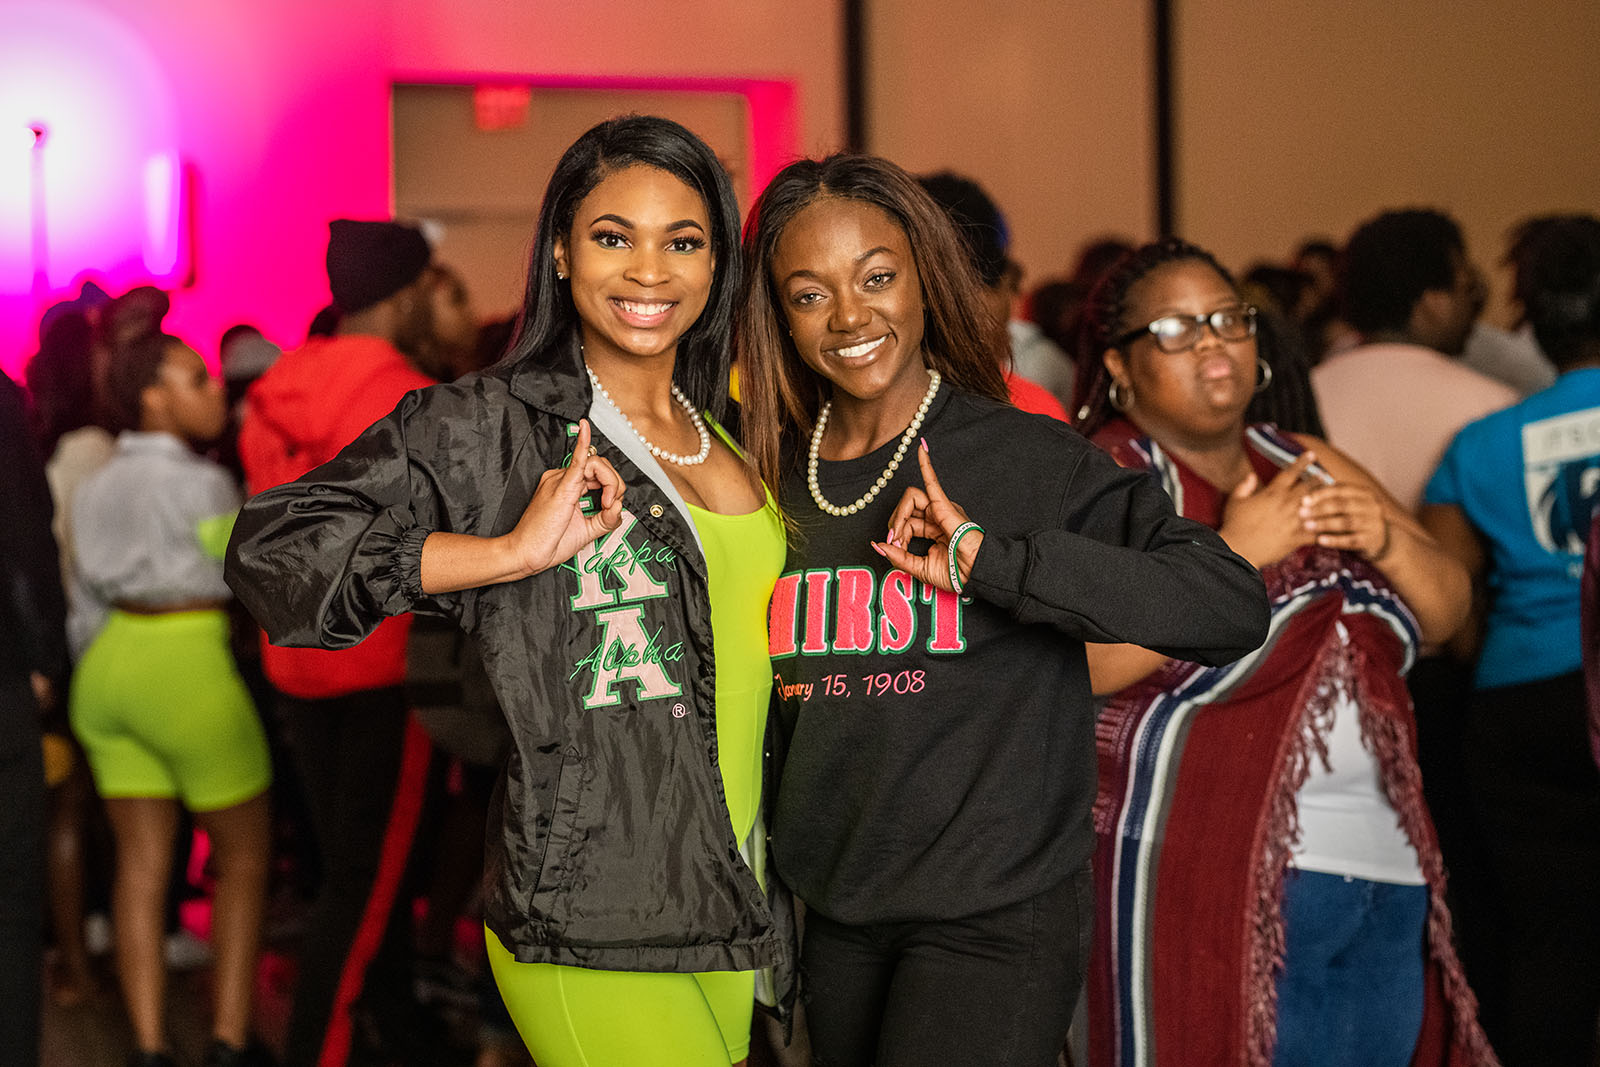 Two students member of a sororities at a event.